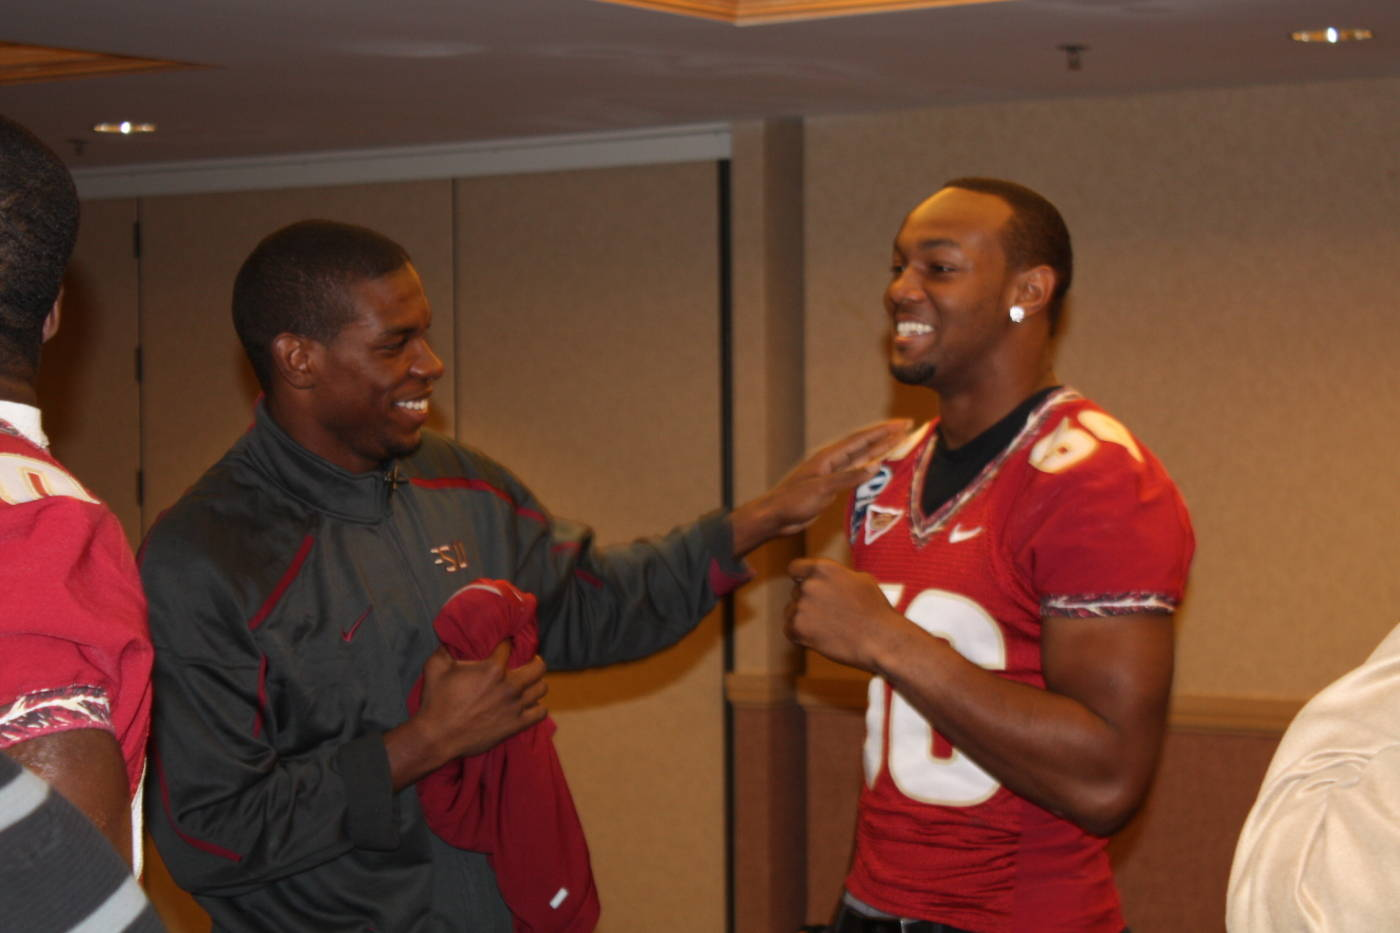 Rod Owens and Dekoda Watson sharing a laugh at the Gator Bowl coaches and players press conference at the Hyatt in Jacksonville.